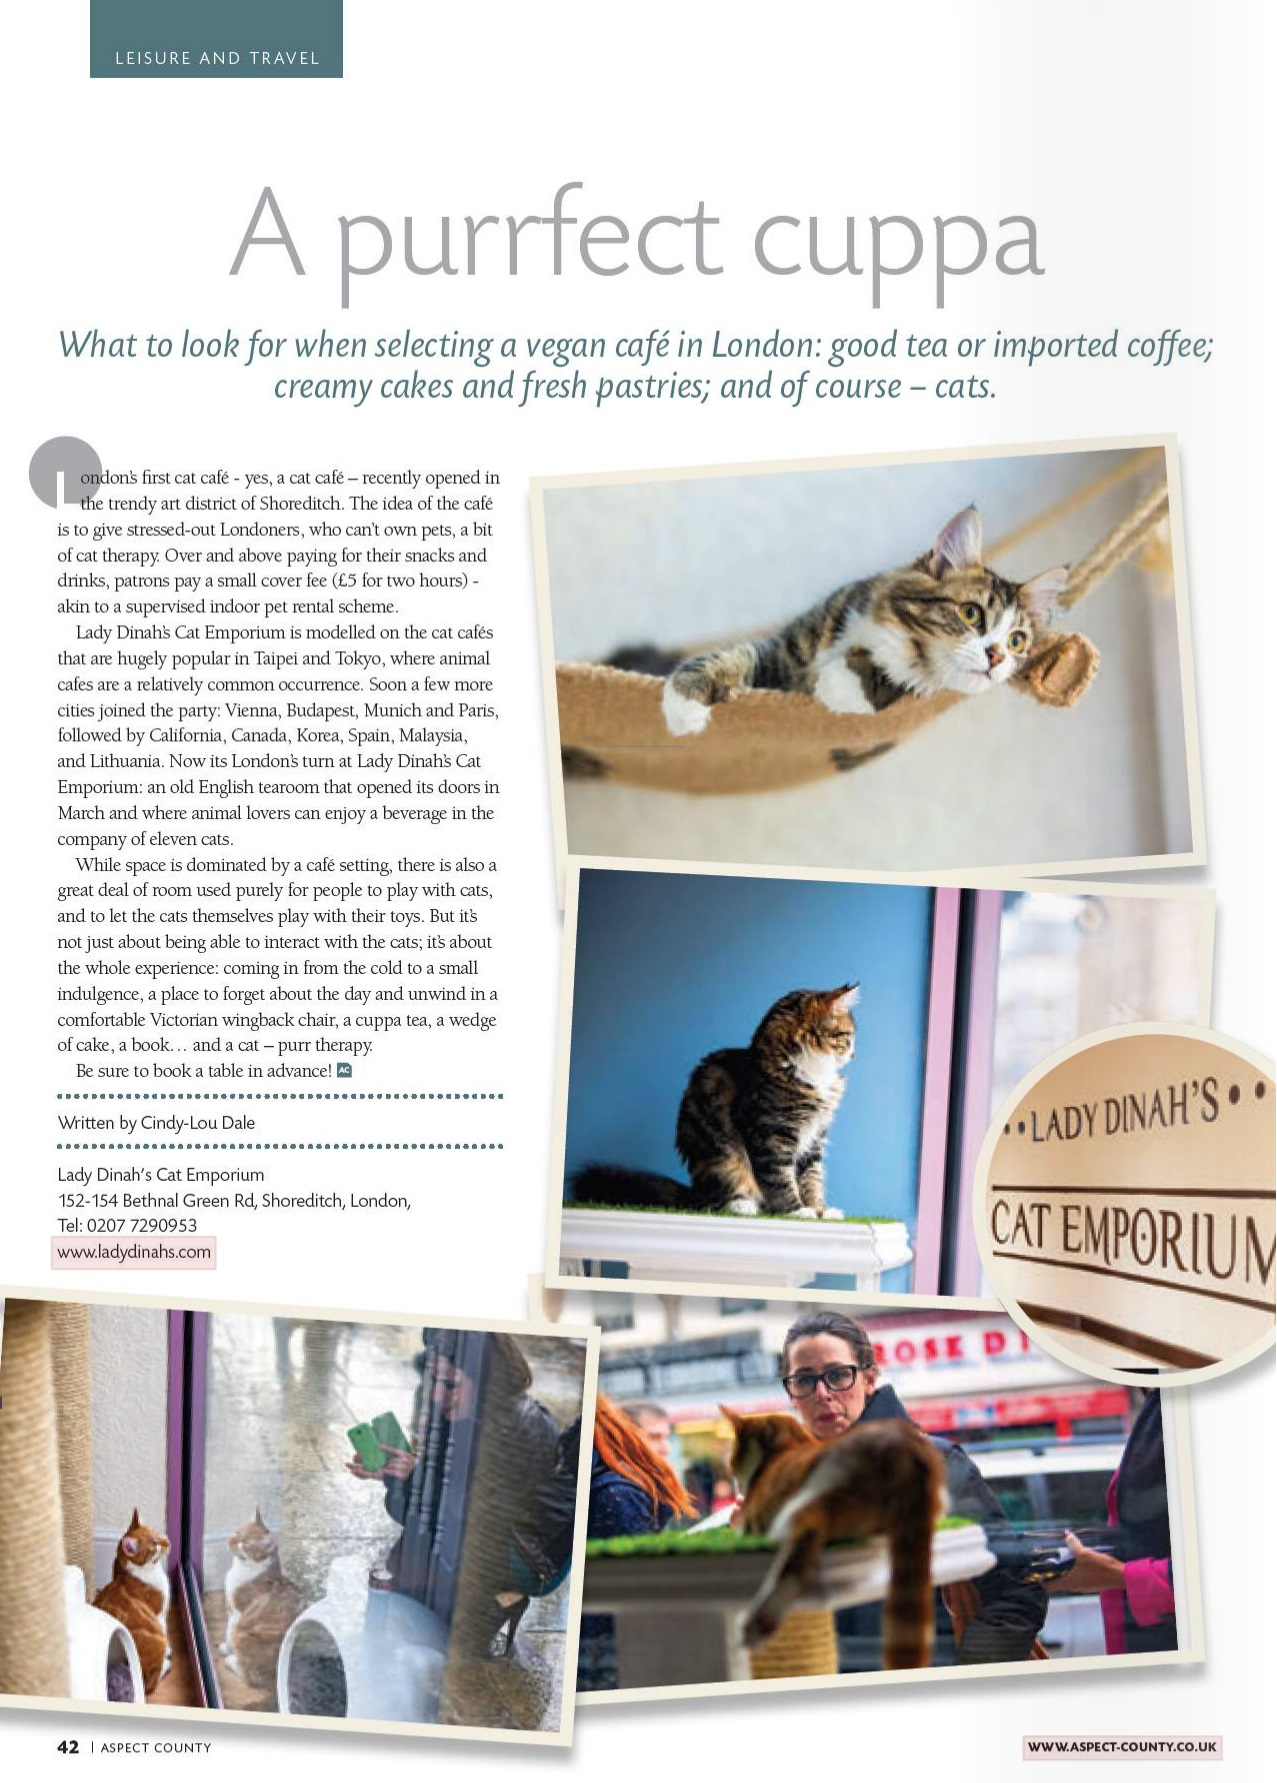 Aspect County, UK - Lady Dinahs Cat Emporium